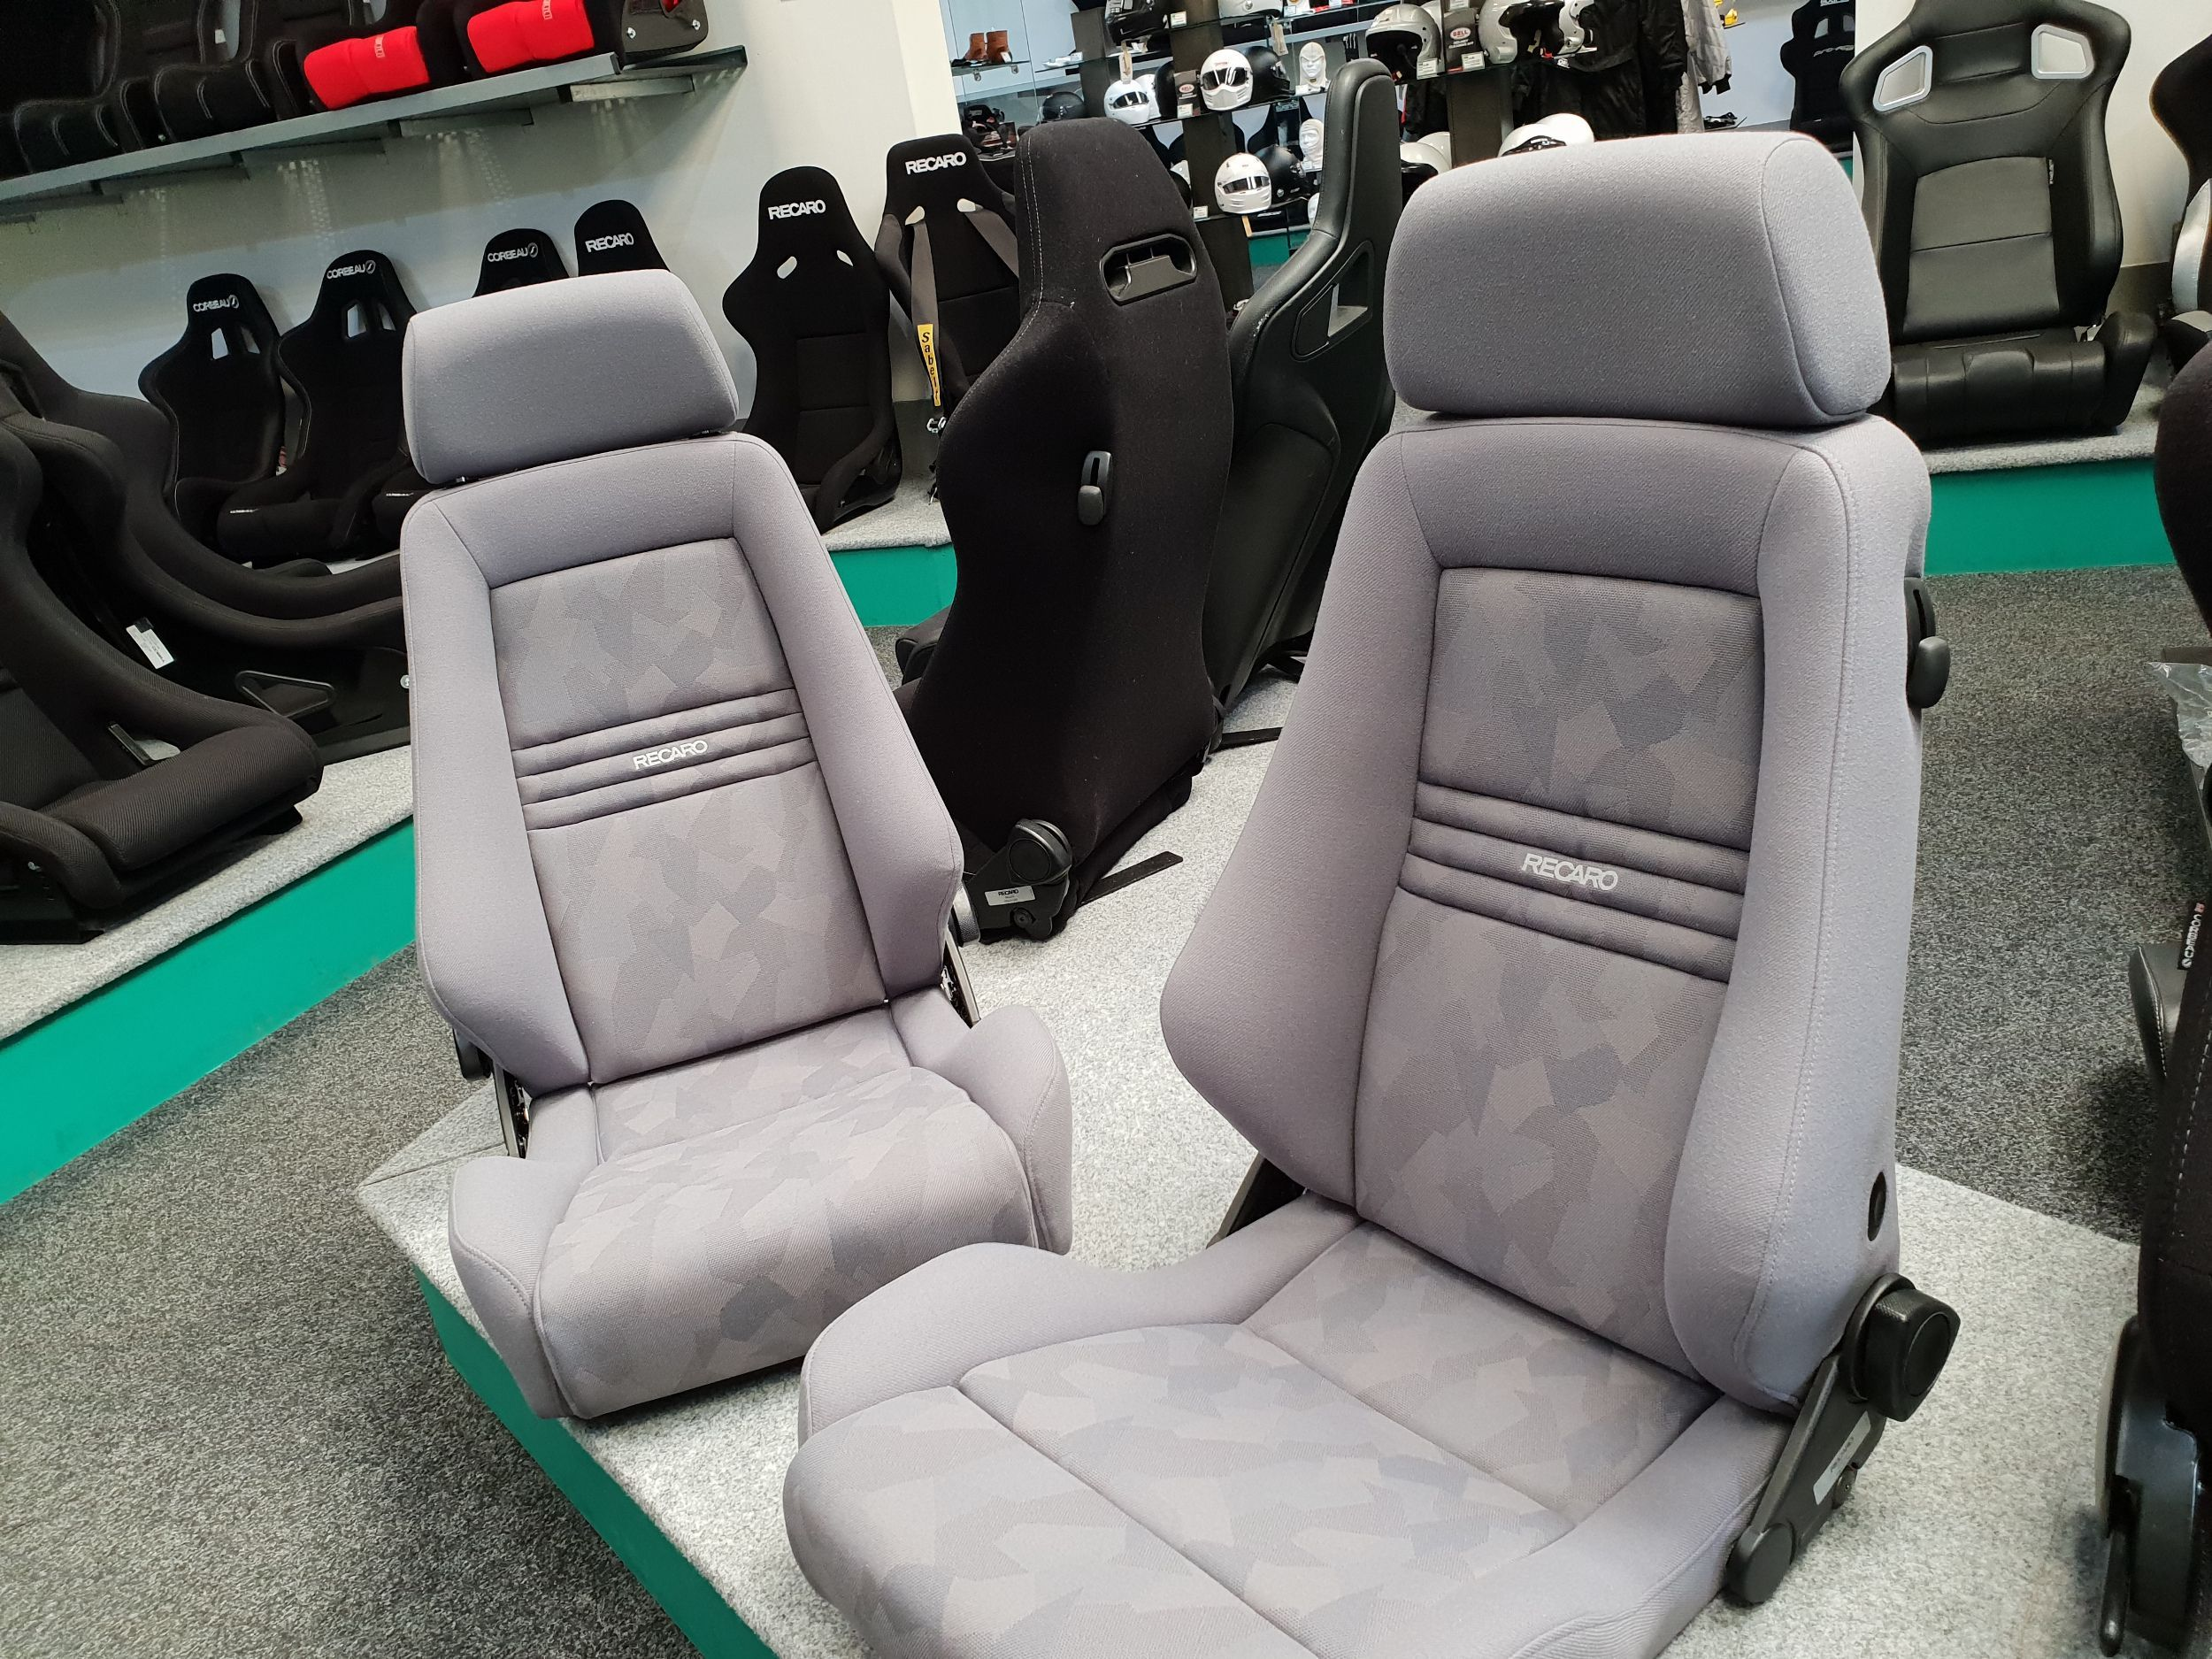 The Recaro Expert L Is An Instantly Recognisable Seat We Ve Seen This As A Standard Option In A Range Of Cars Over The Years And Has Remai Fornituras Artistas